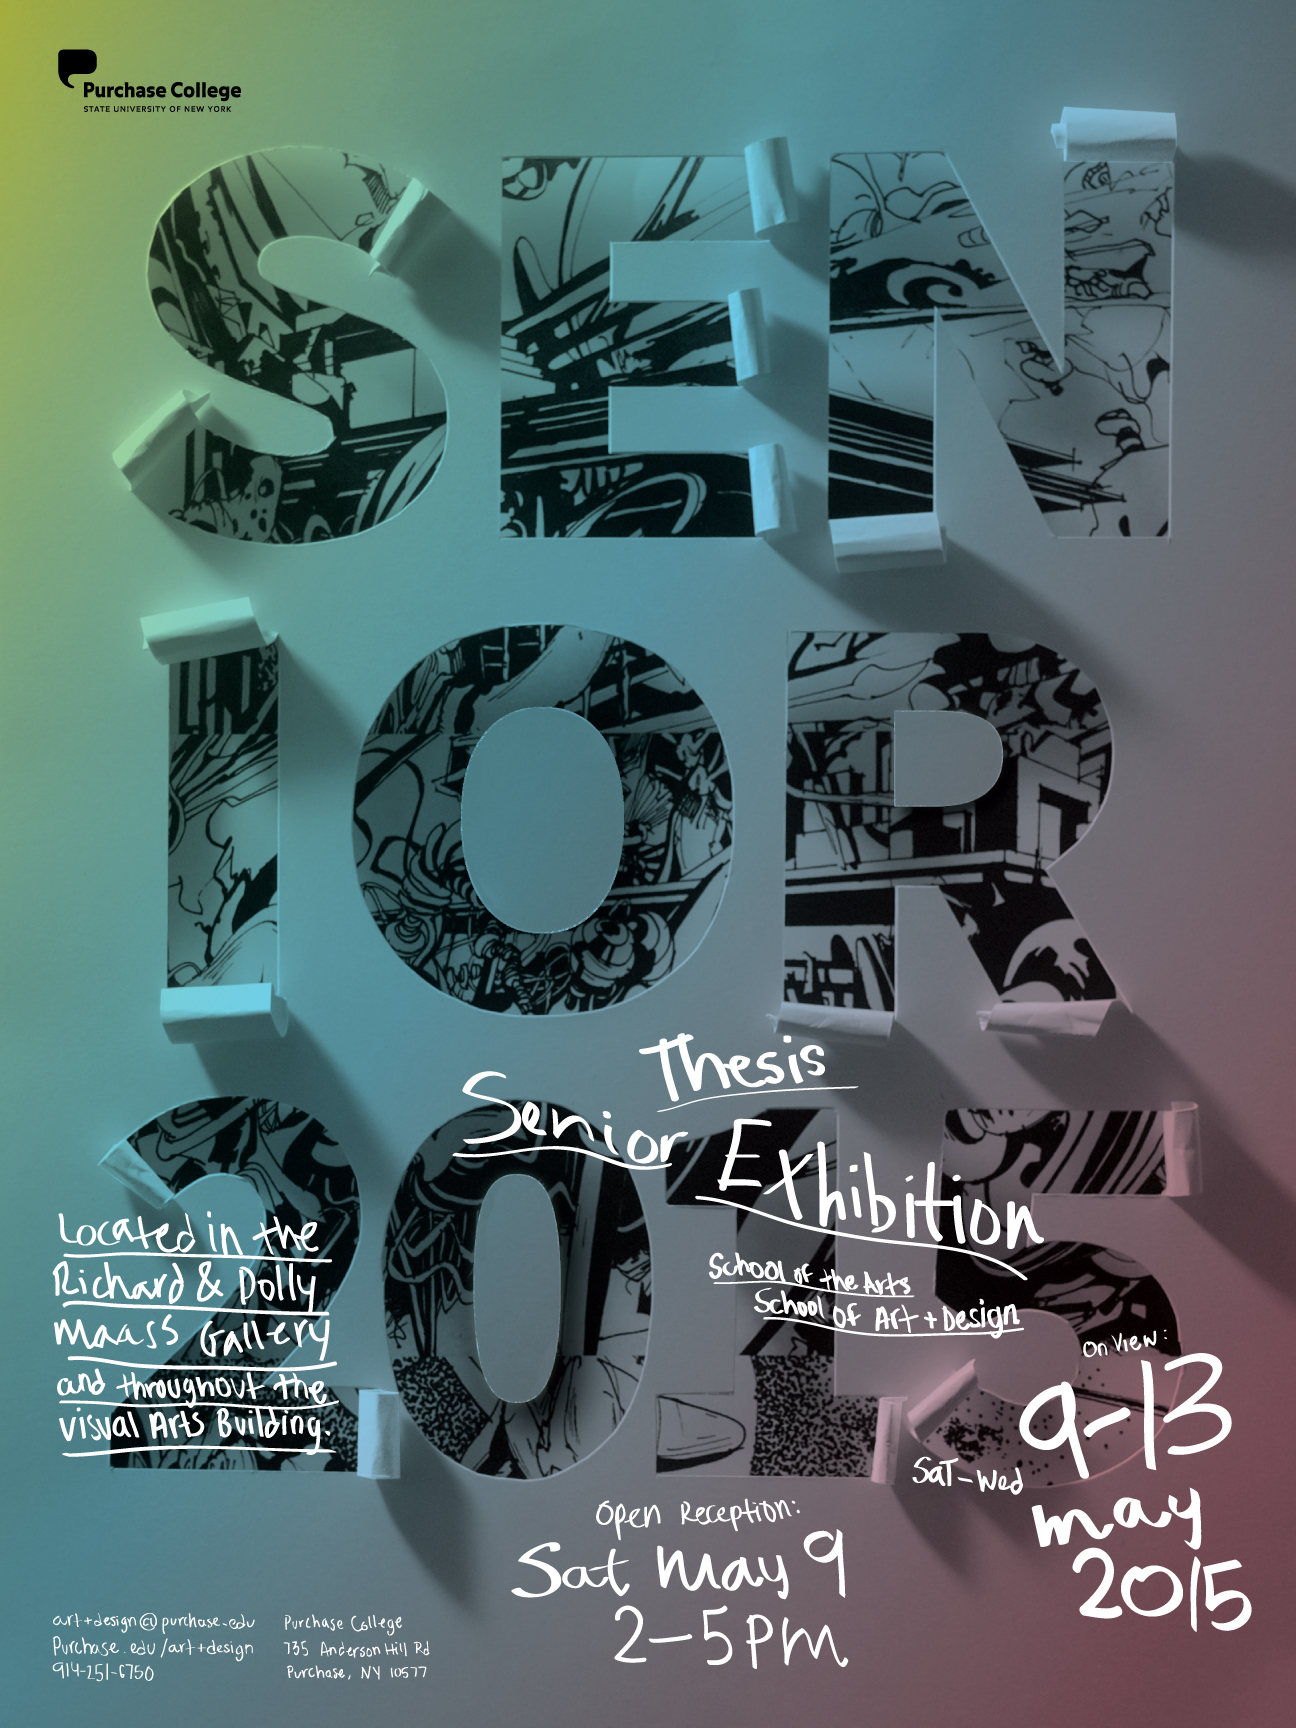 SENIOR THESIS EXHIBITION     SAM GRAAP   VISUAL DESIGNER Facebook